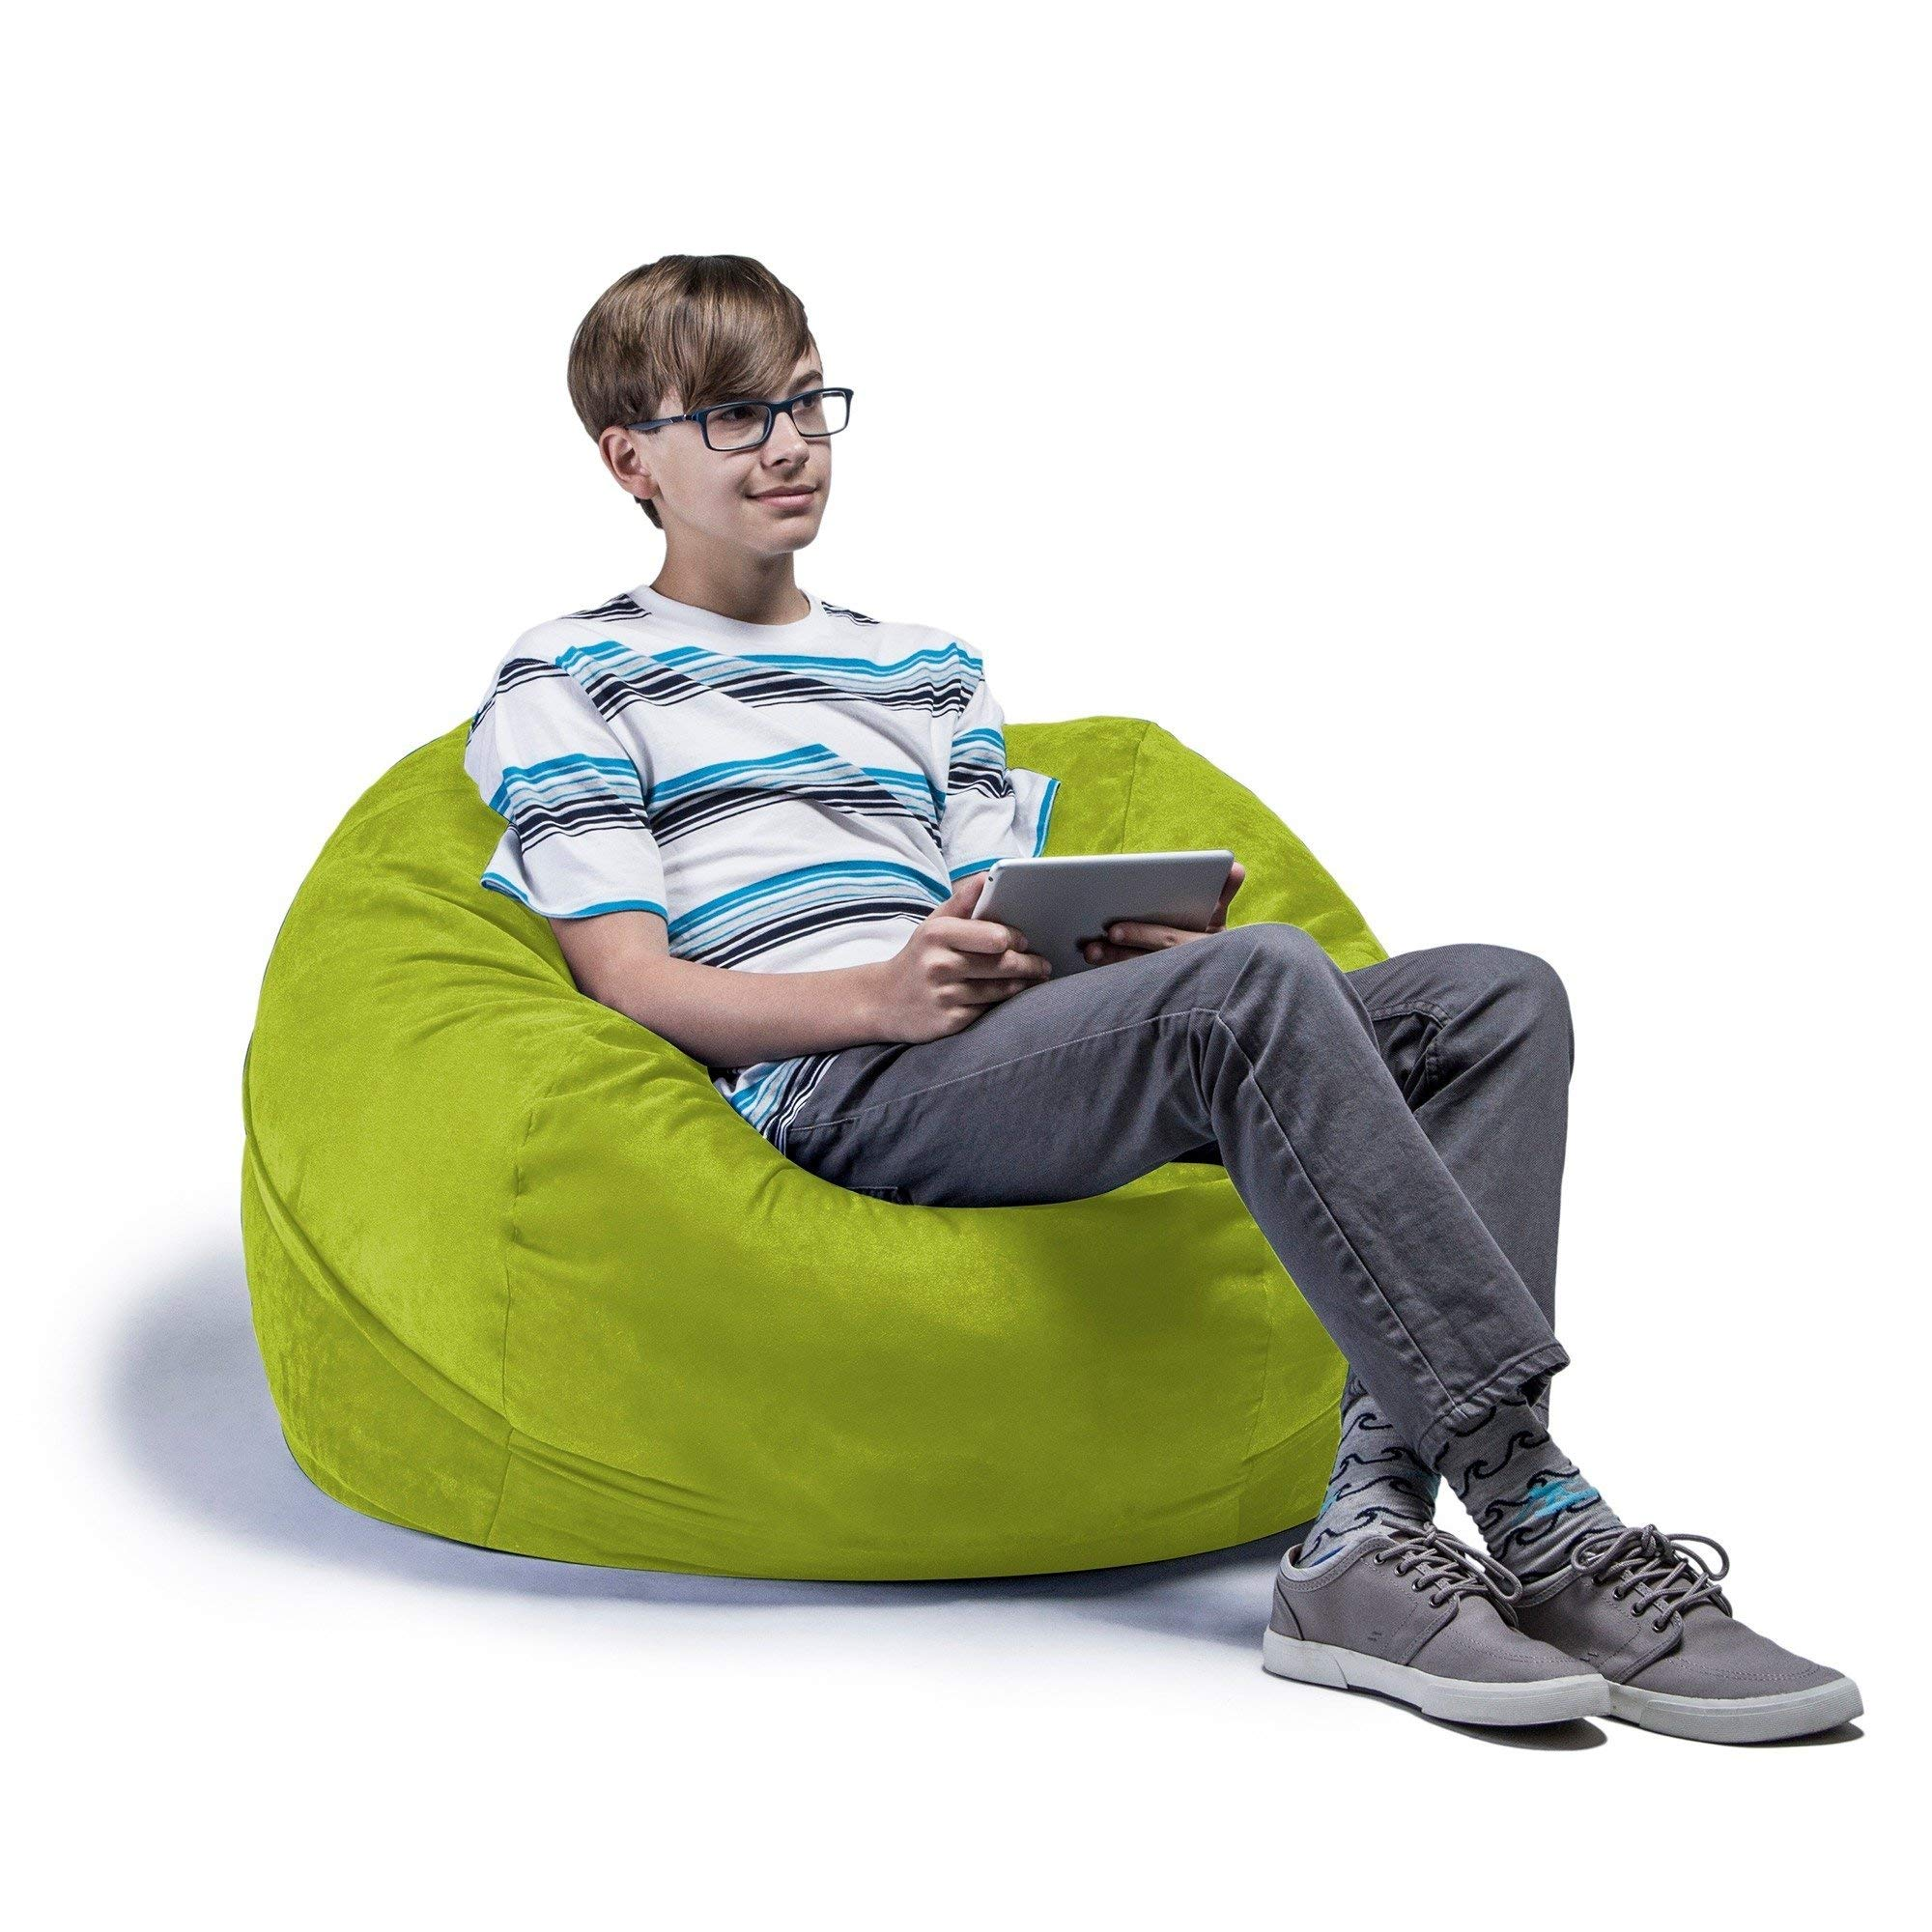 Jaxx Lounger Jr. (Microsuede Lime) (48''H x 24''W x 24''D) by Studio one Up (Image #1)